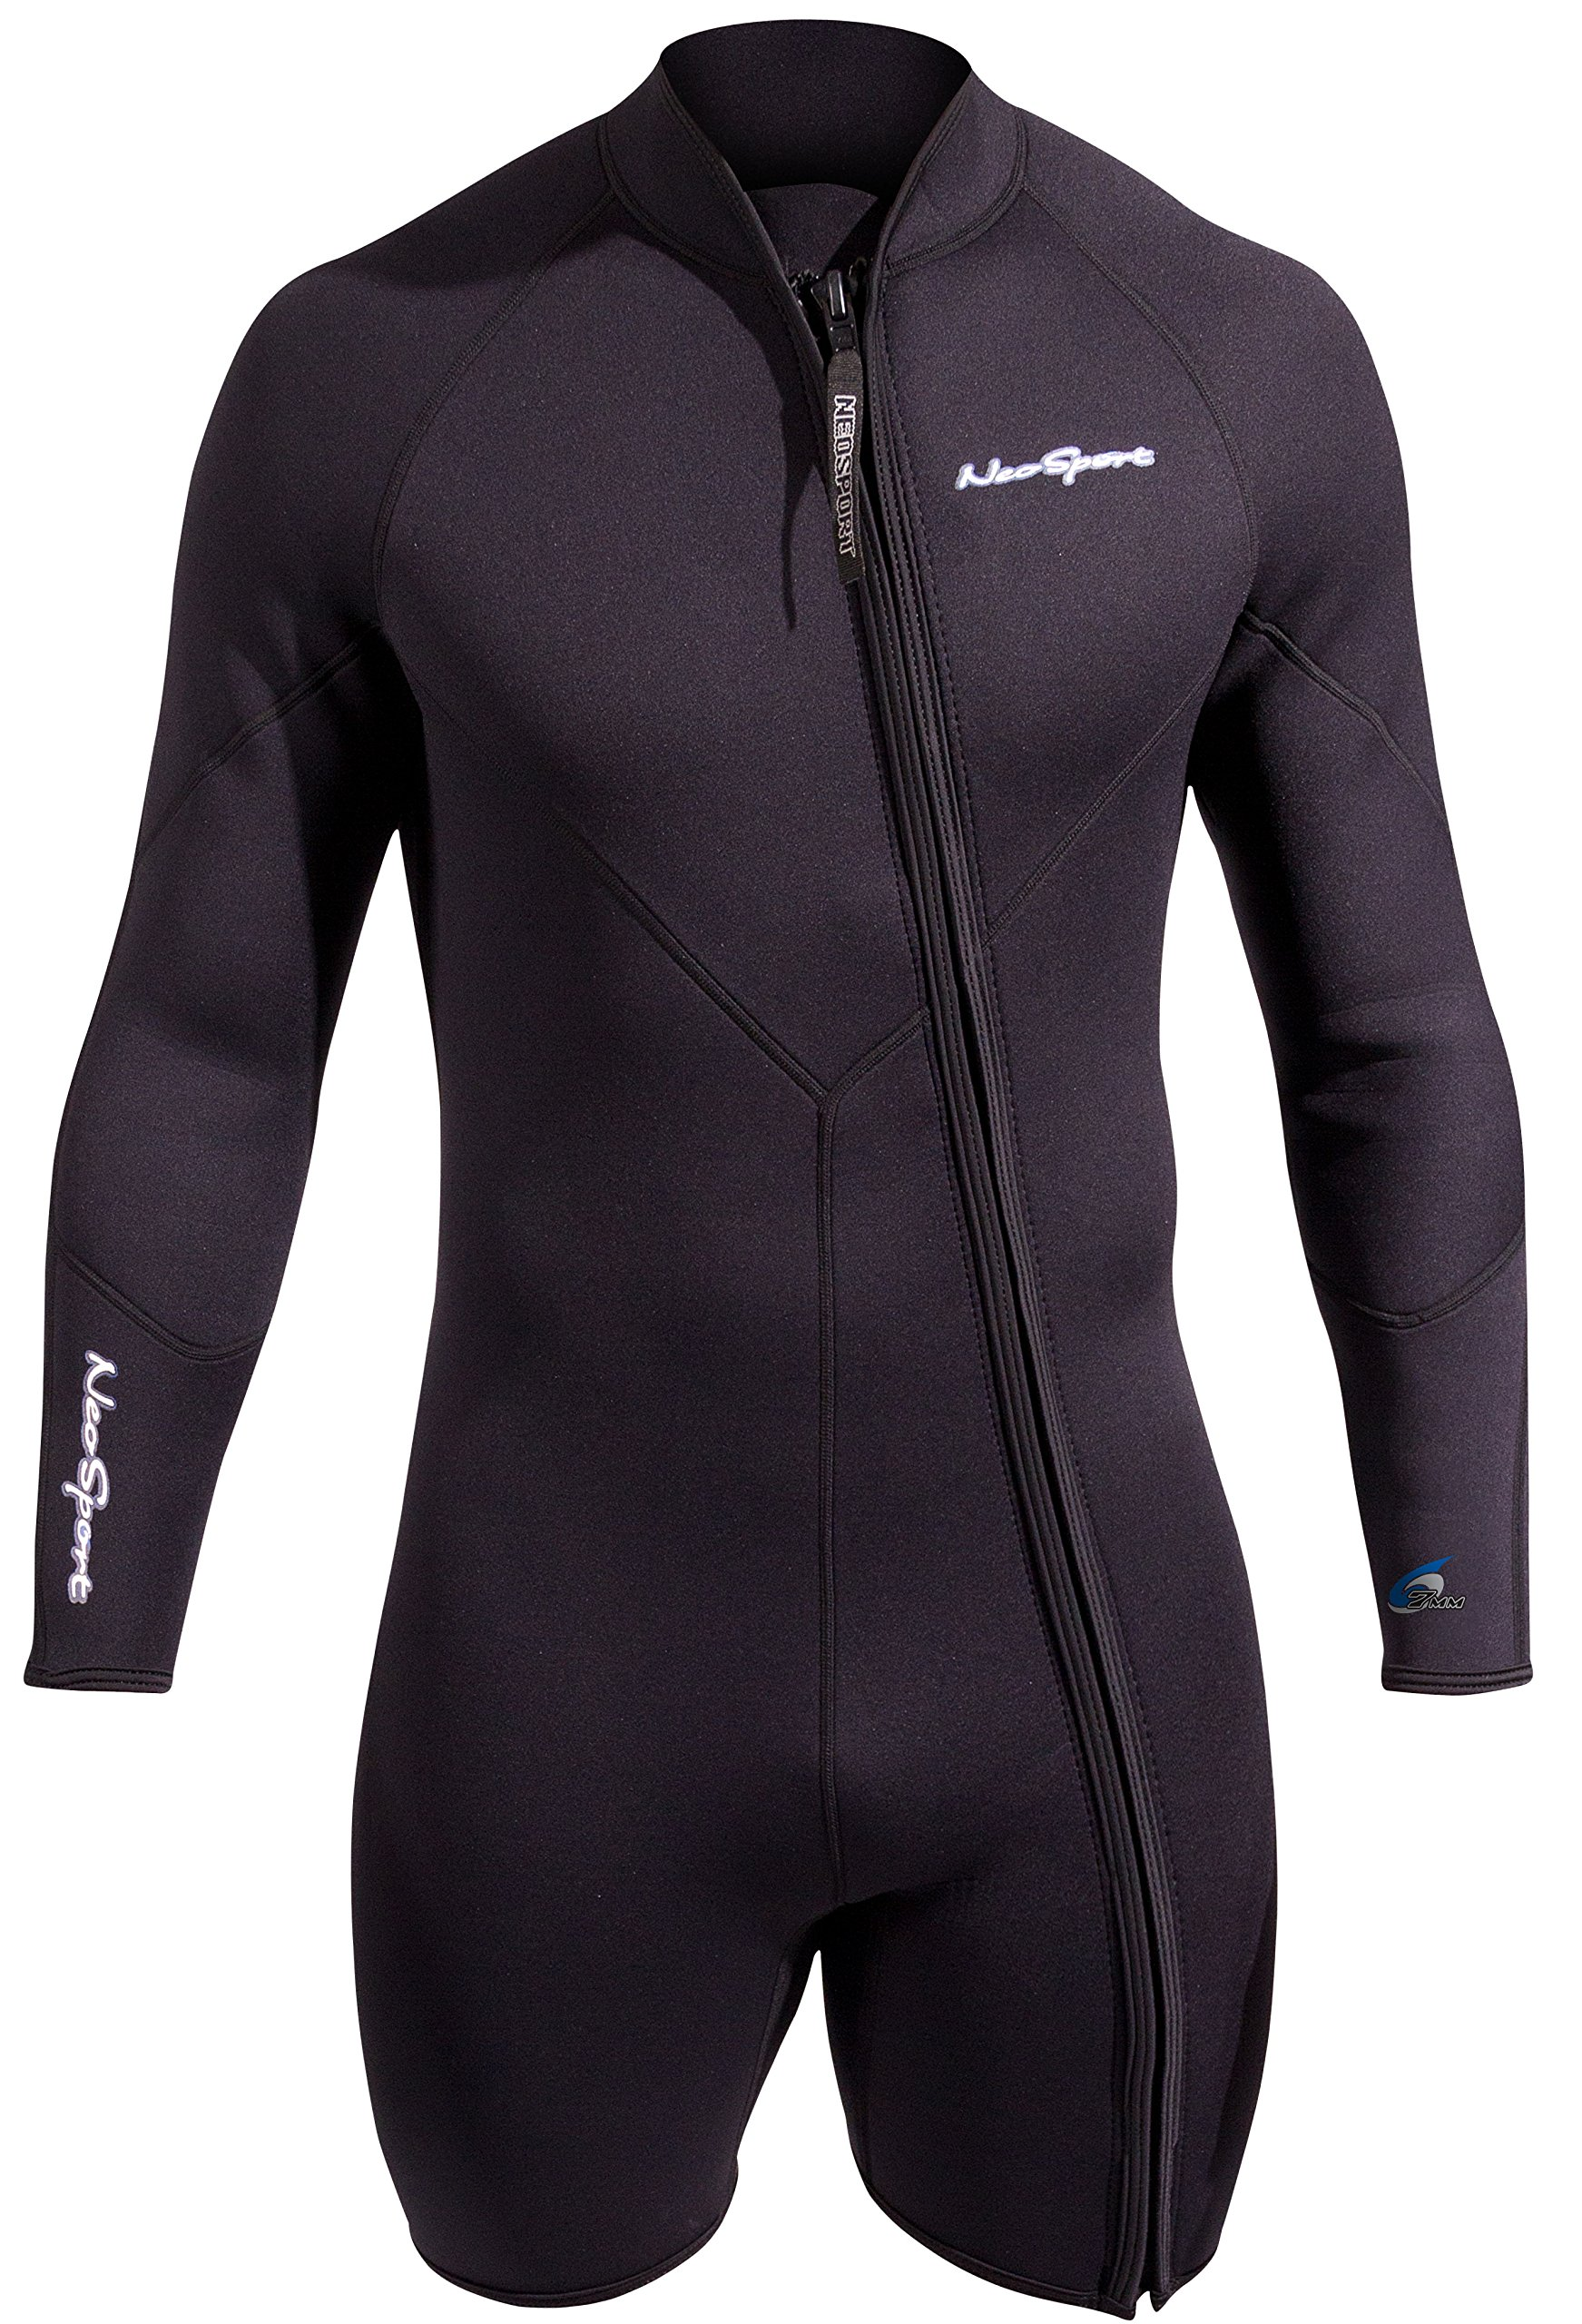 NeoSport Men's Premium Neoprene 7mm Waterman Wetsuit Jacket, Small by Neo-Sport